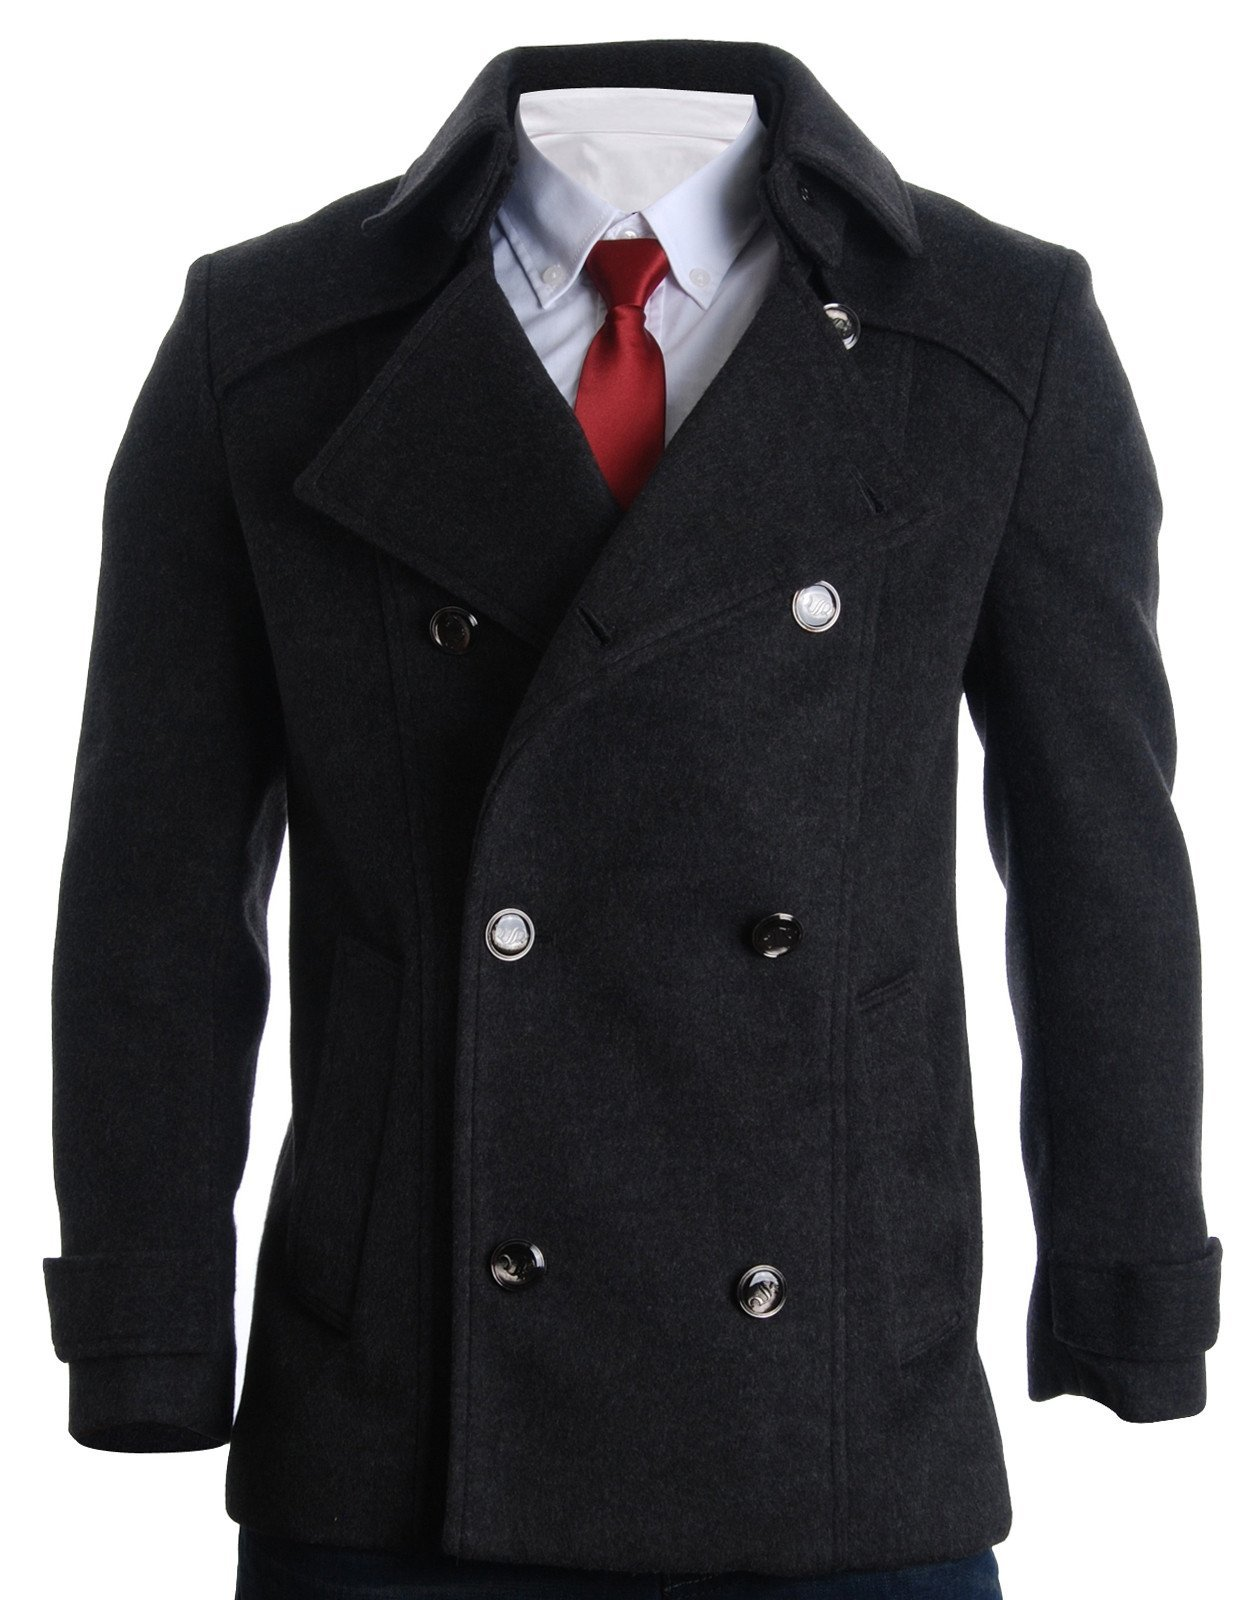 FLATSEVEN Mens Detachable Collar Double Breasted Pea Coat (CT123) Charcoal, US XS/Asia M